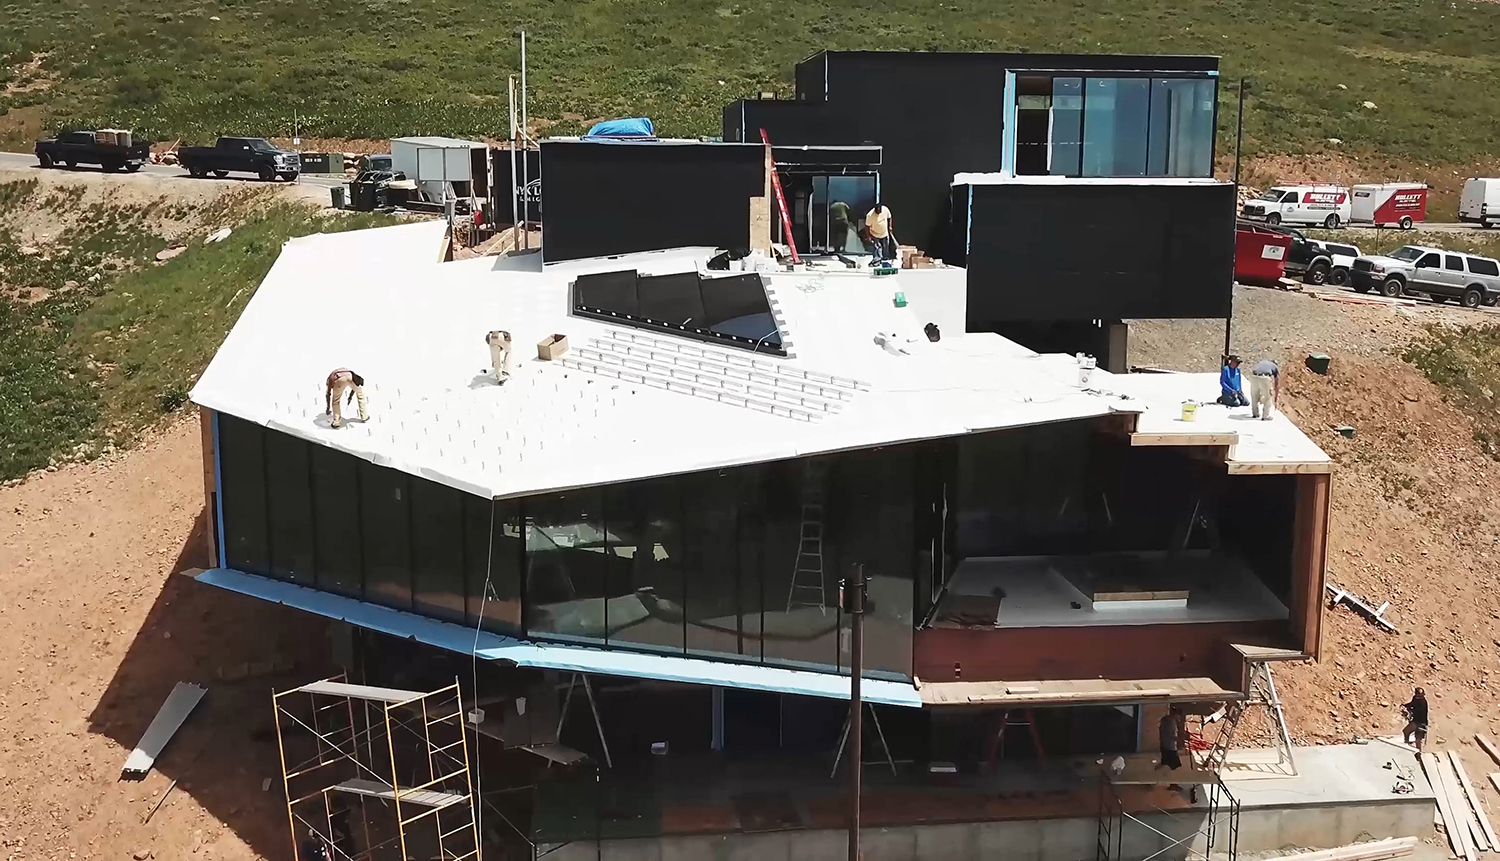 Aerial image of the Dark Chalet under construction